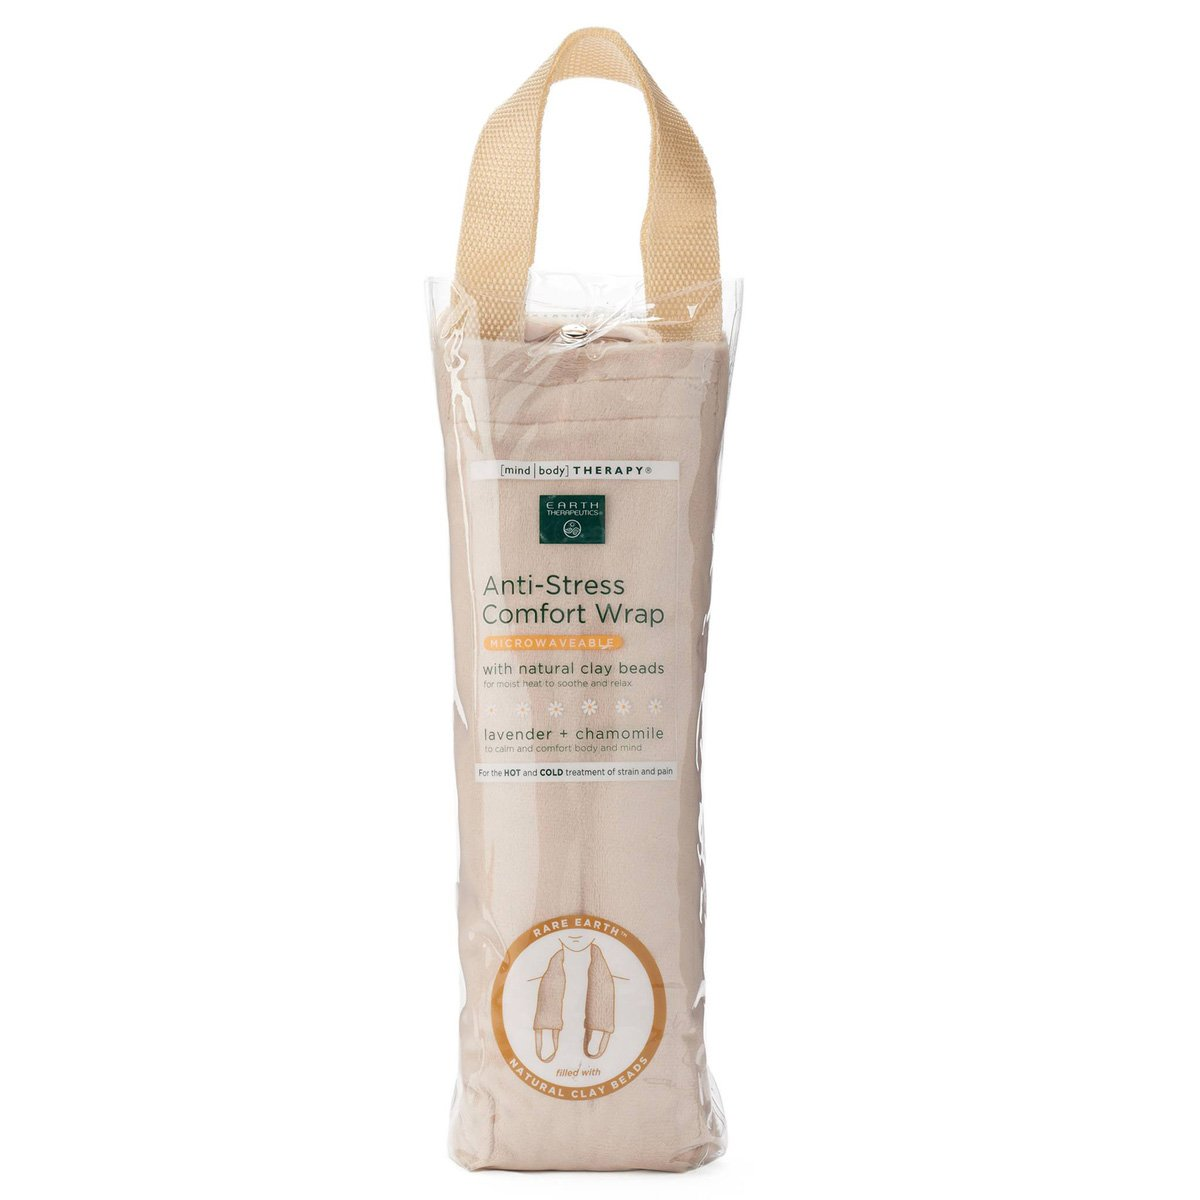 Earth Therapeutics Microwaveable Lavender and Chamomile Anti-Stress Comfort Wrap, Tan, 1 Wrap by Earth Therapeutics